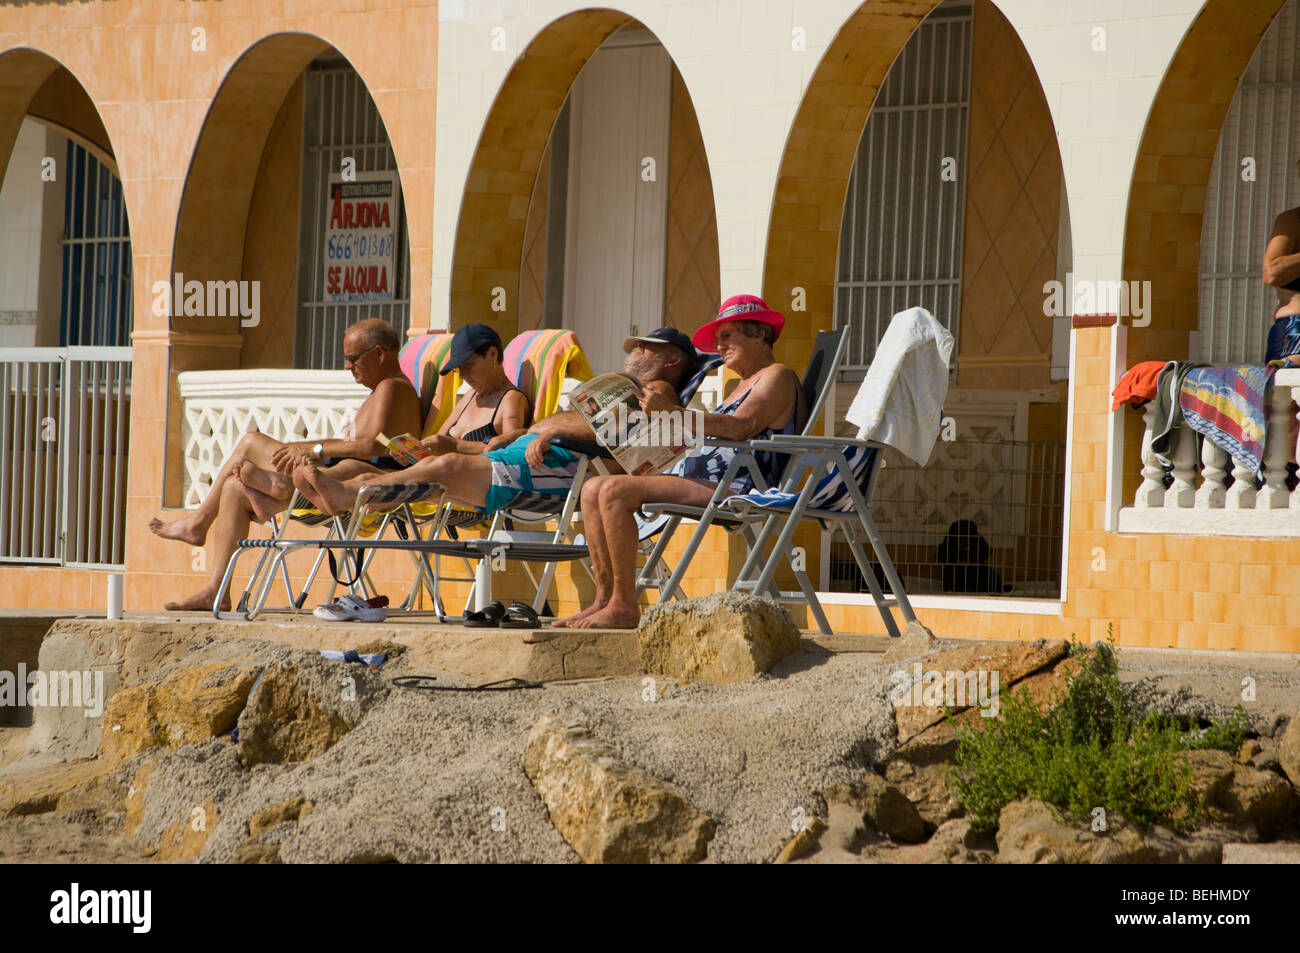 Two Elderly Couples Relaxing In The Sun On Beach Chairs Stock Photo ...